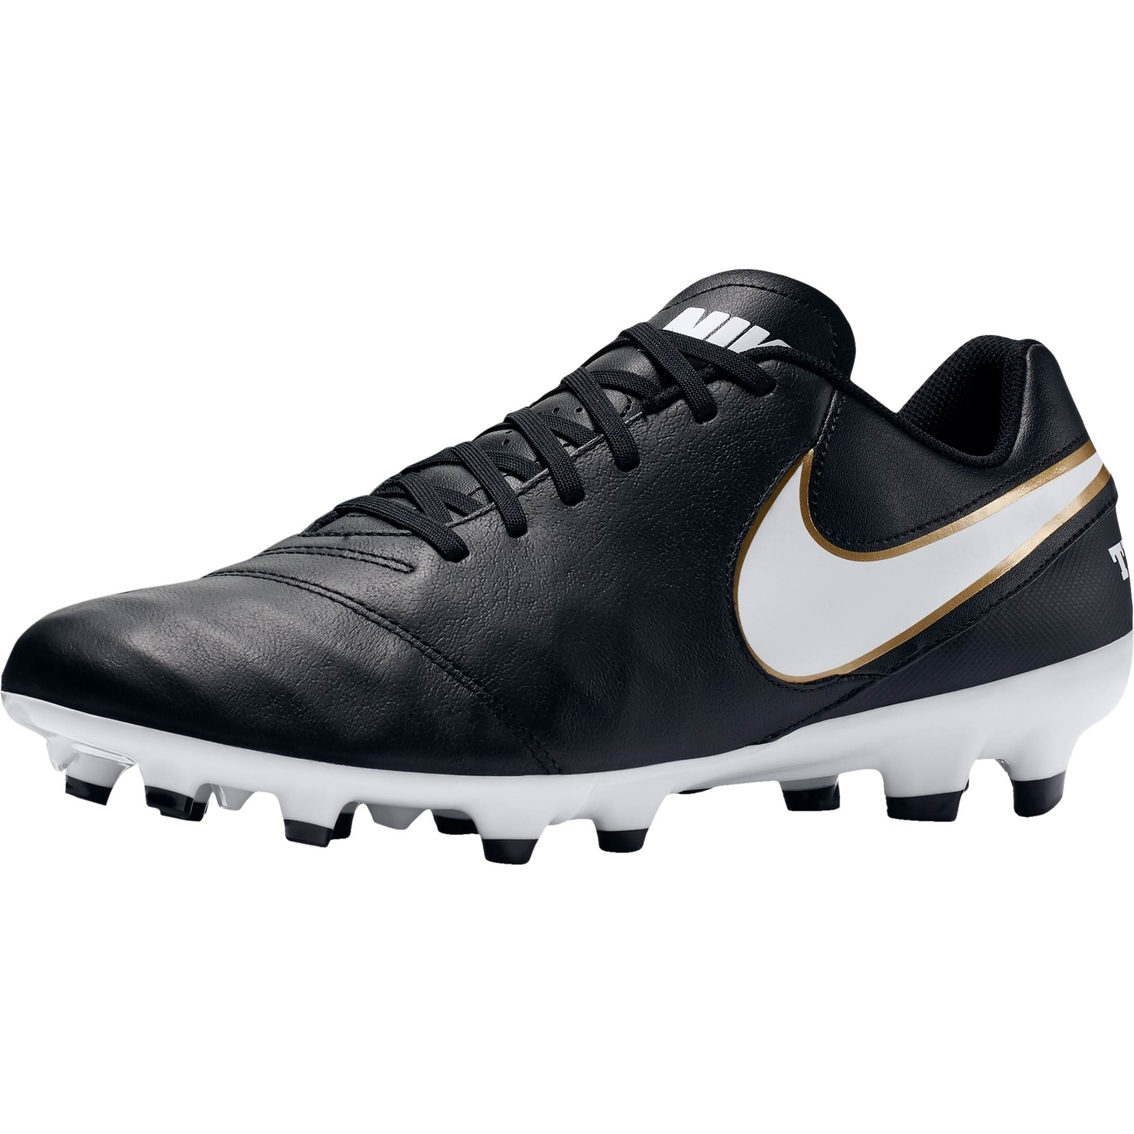 d01719855bba4 Nike Men's Tiempo Genio Ii Leather Firm Ground Soccer Cleats ...